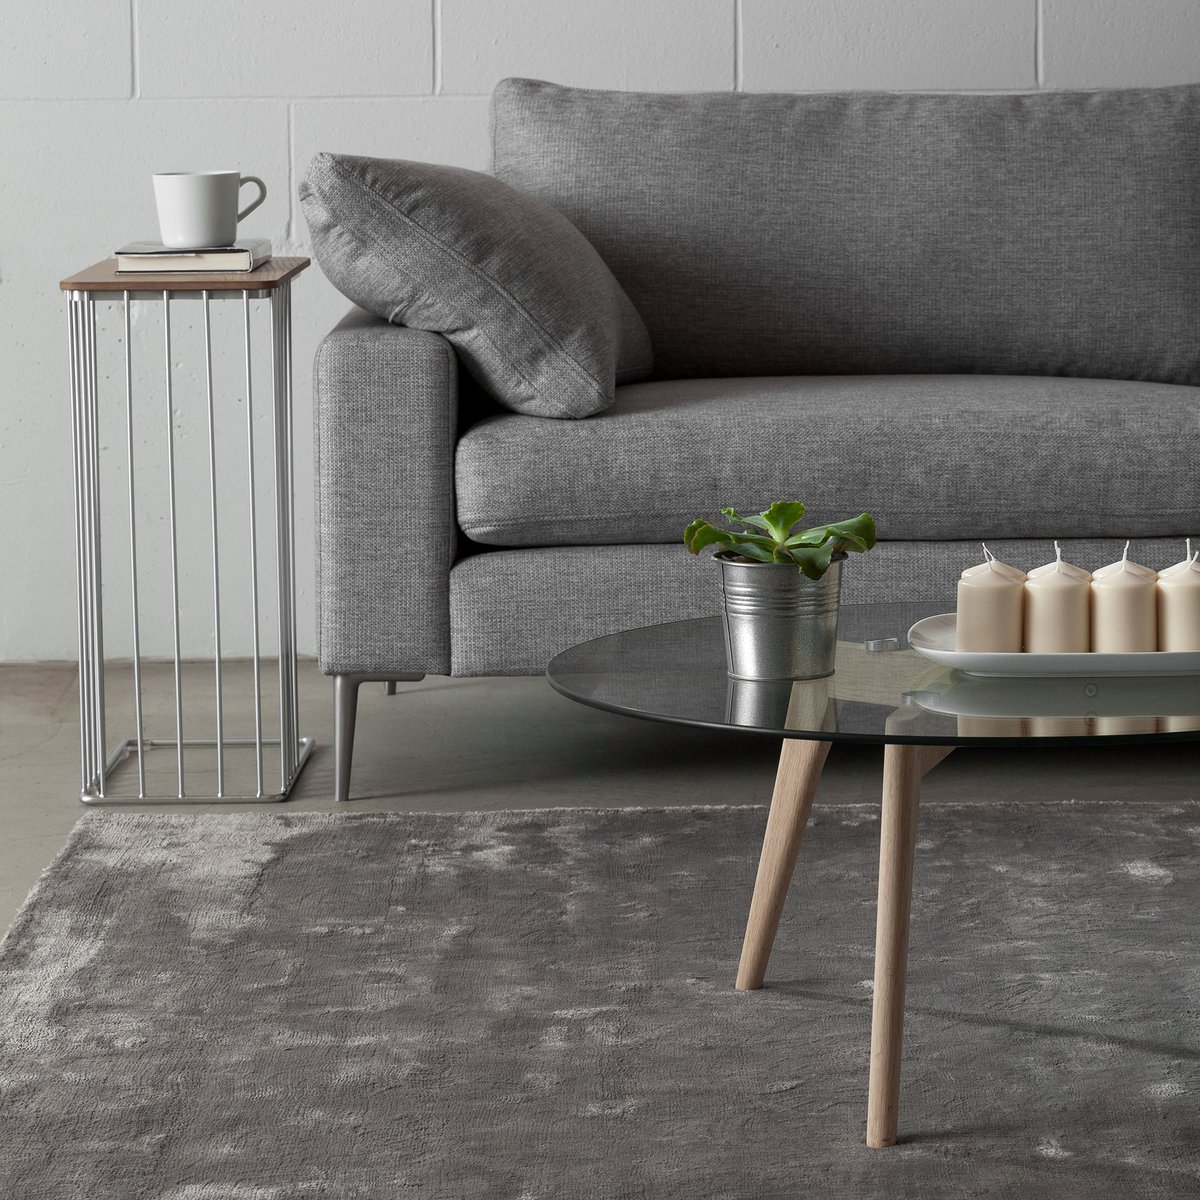 Article On Twitter Coffee And A Danish Sofa The Nova Sofa Is